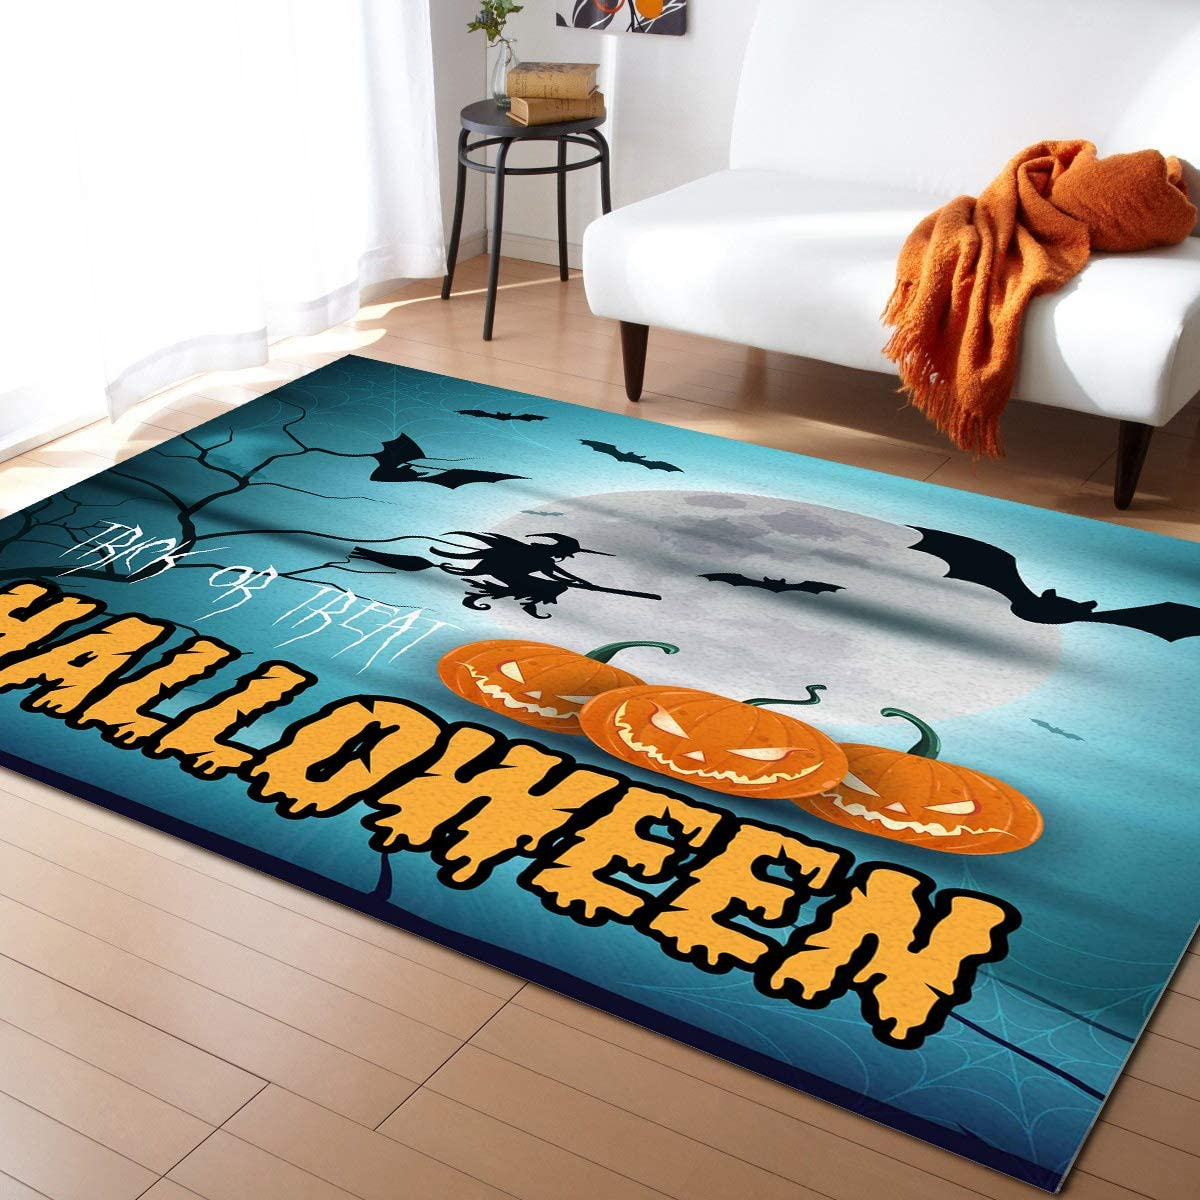 Anmevor Rectangle Max 44% OFF Area Rug Runner or Max 67% OFF Treat Trick Halloween